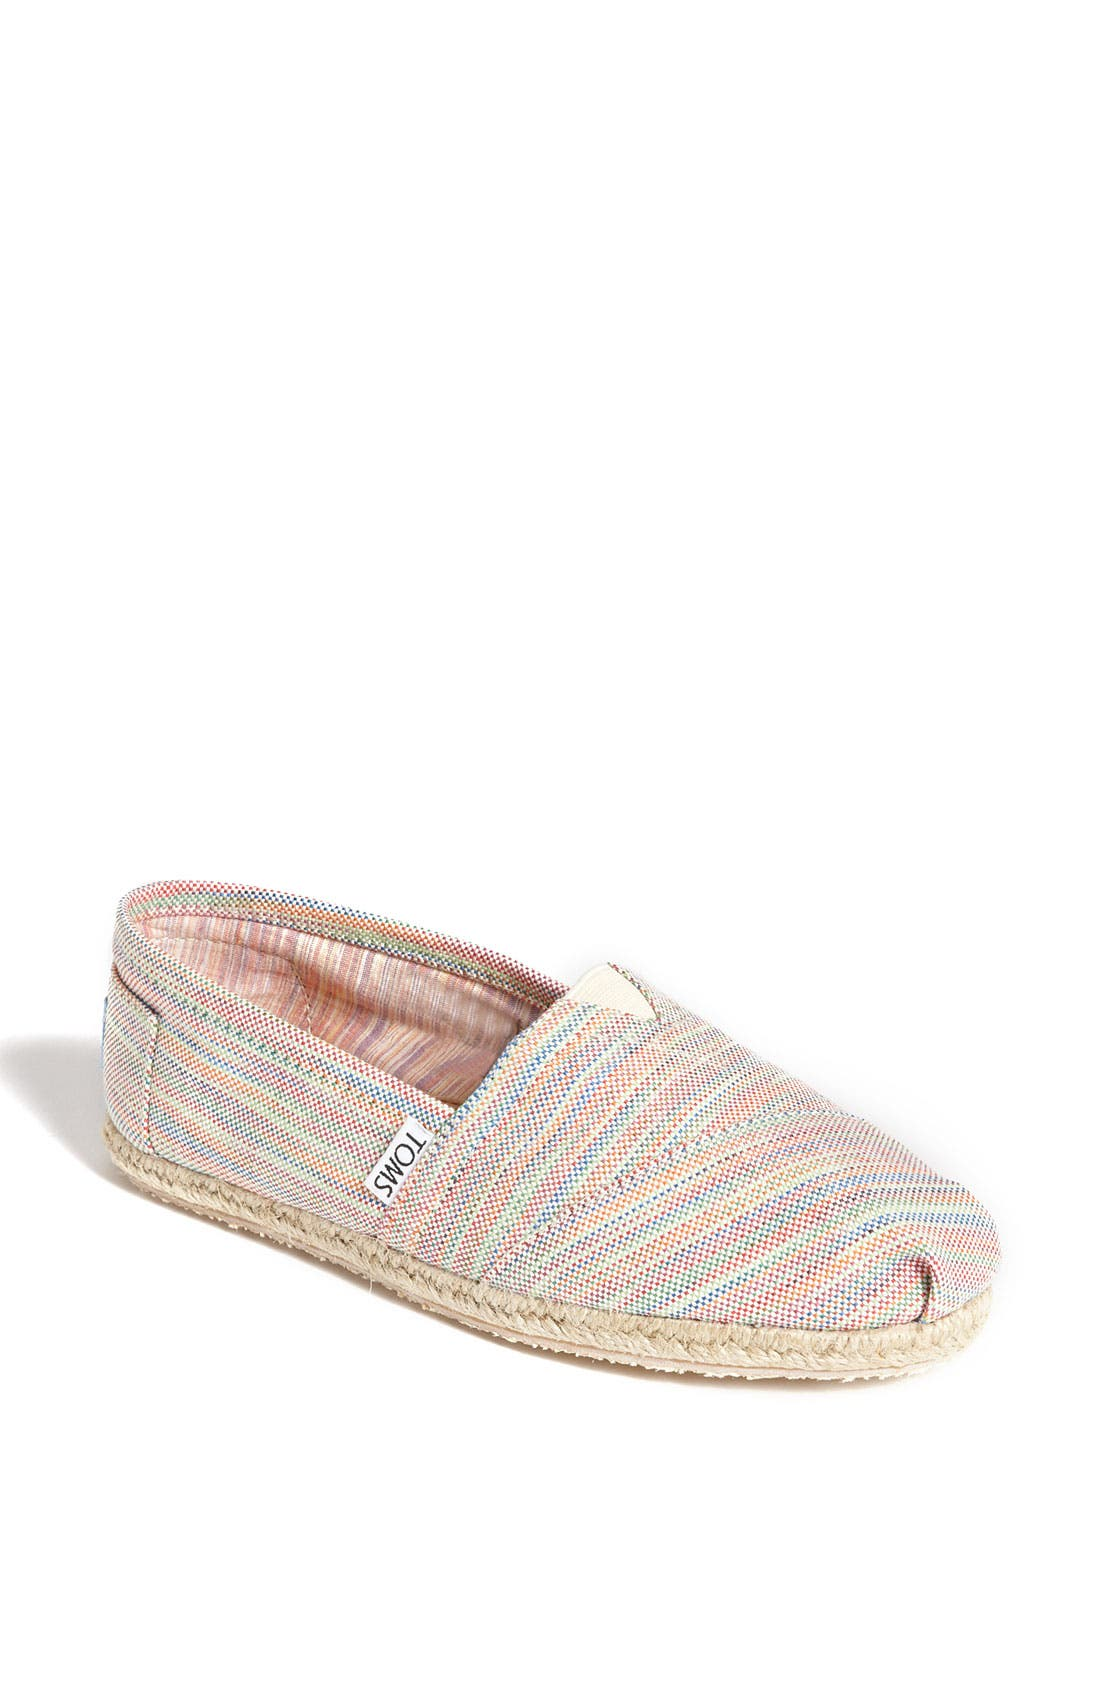 Alternate Image 1 Selected - TOMS 'Classic - Baxter' Slip-On (Women)